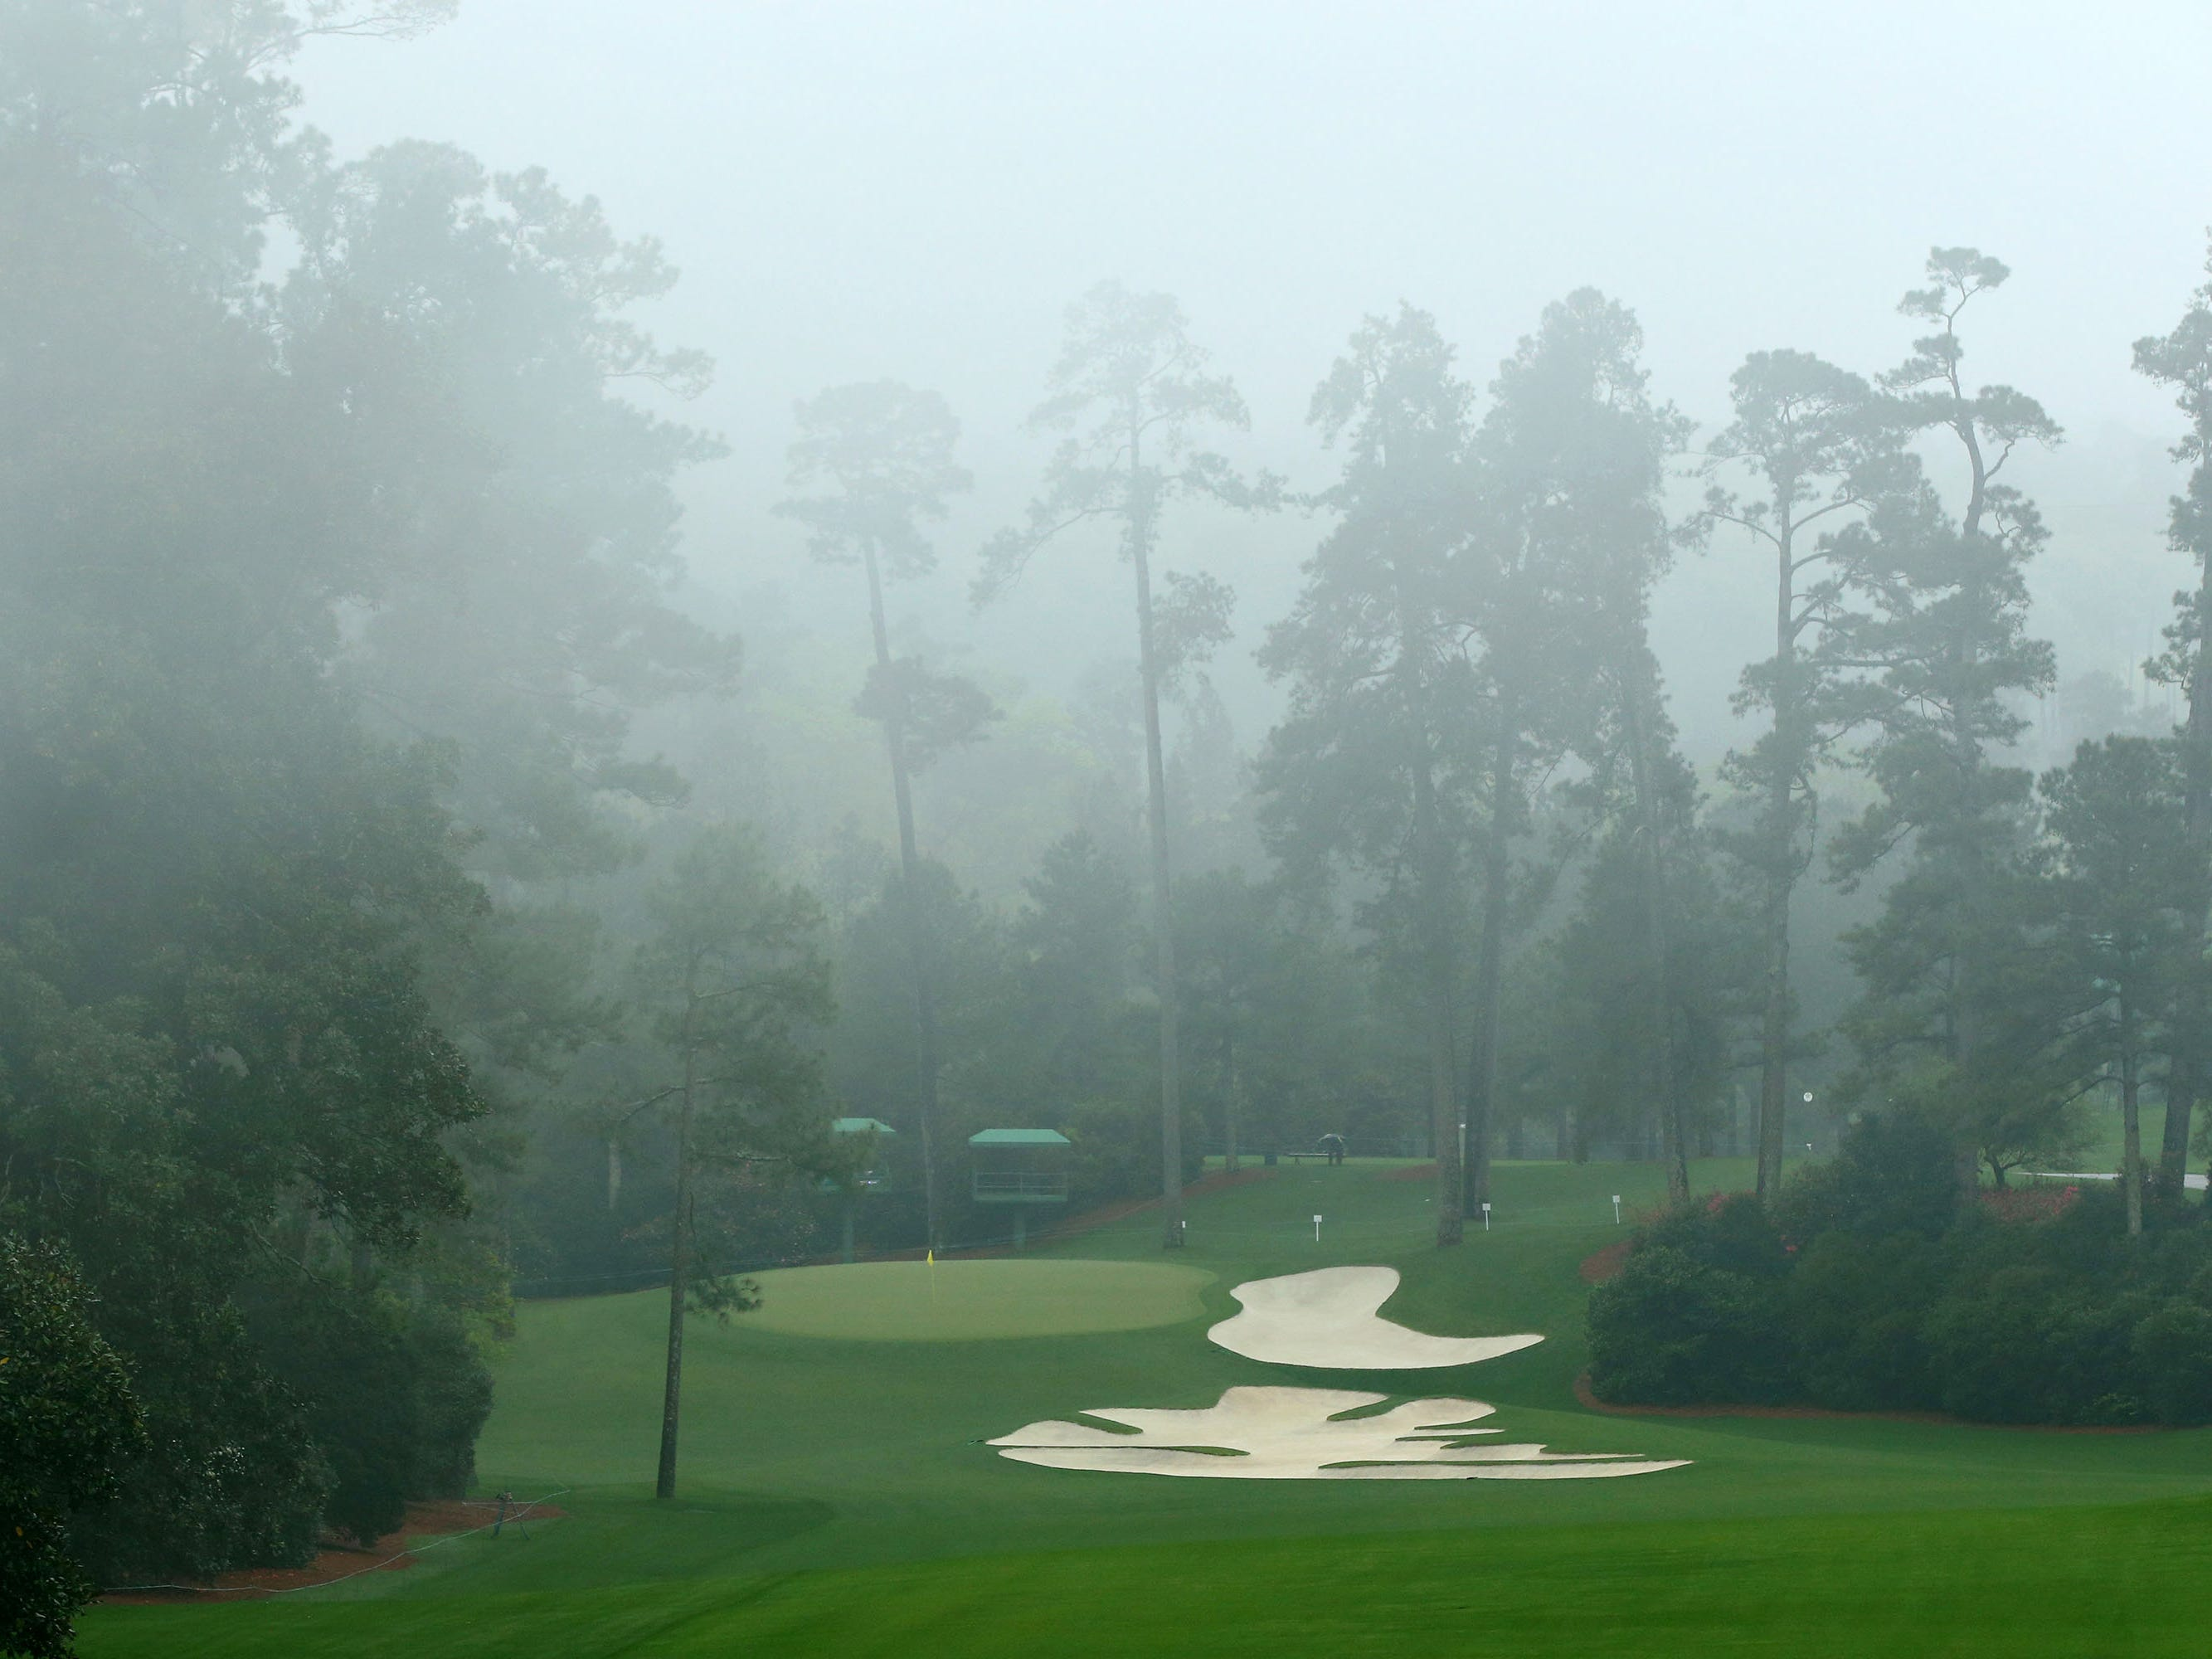 Apr 7, 2019; Augusta, GA, USA; Pine trees and fog on the 10th hole at Augusta National Golf Club. Mandatory Credit: Rob Schumacher-USA TODAY Sports